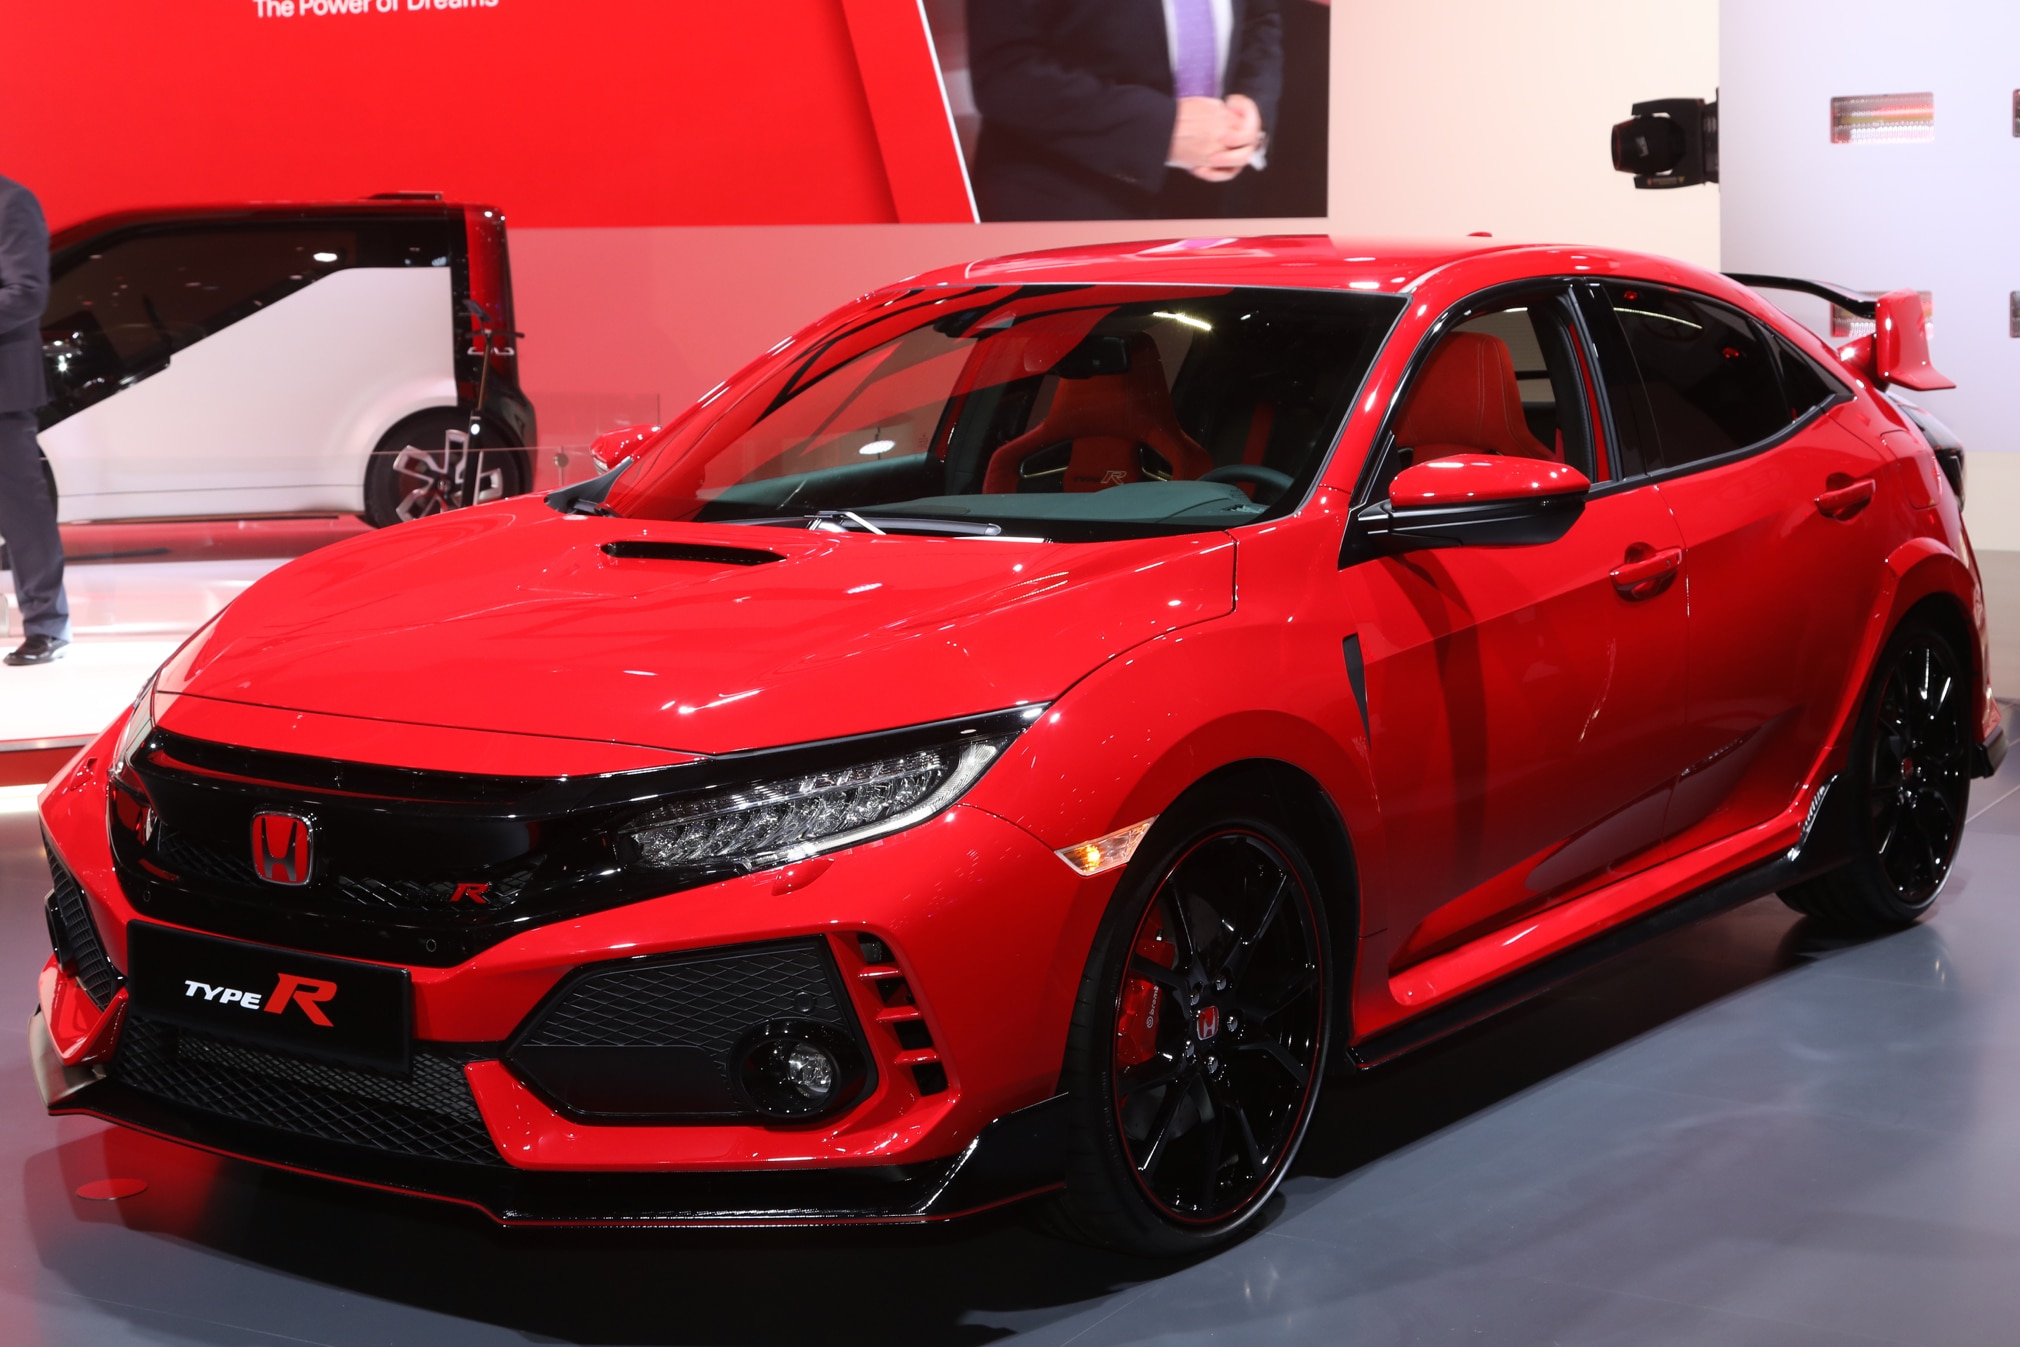 2017-Honda-Civic-Type-R-front-three-quarter-02.jpg